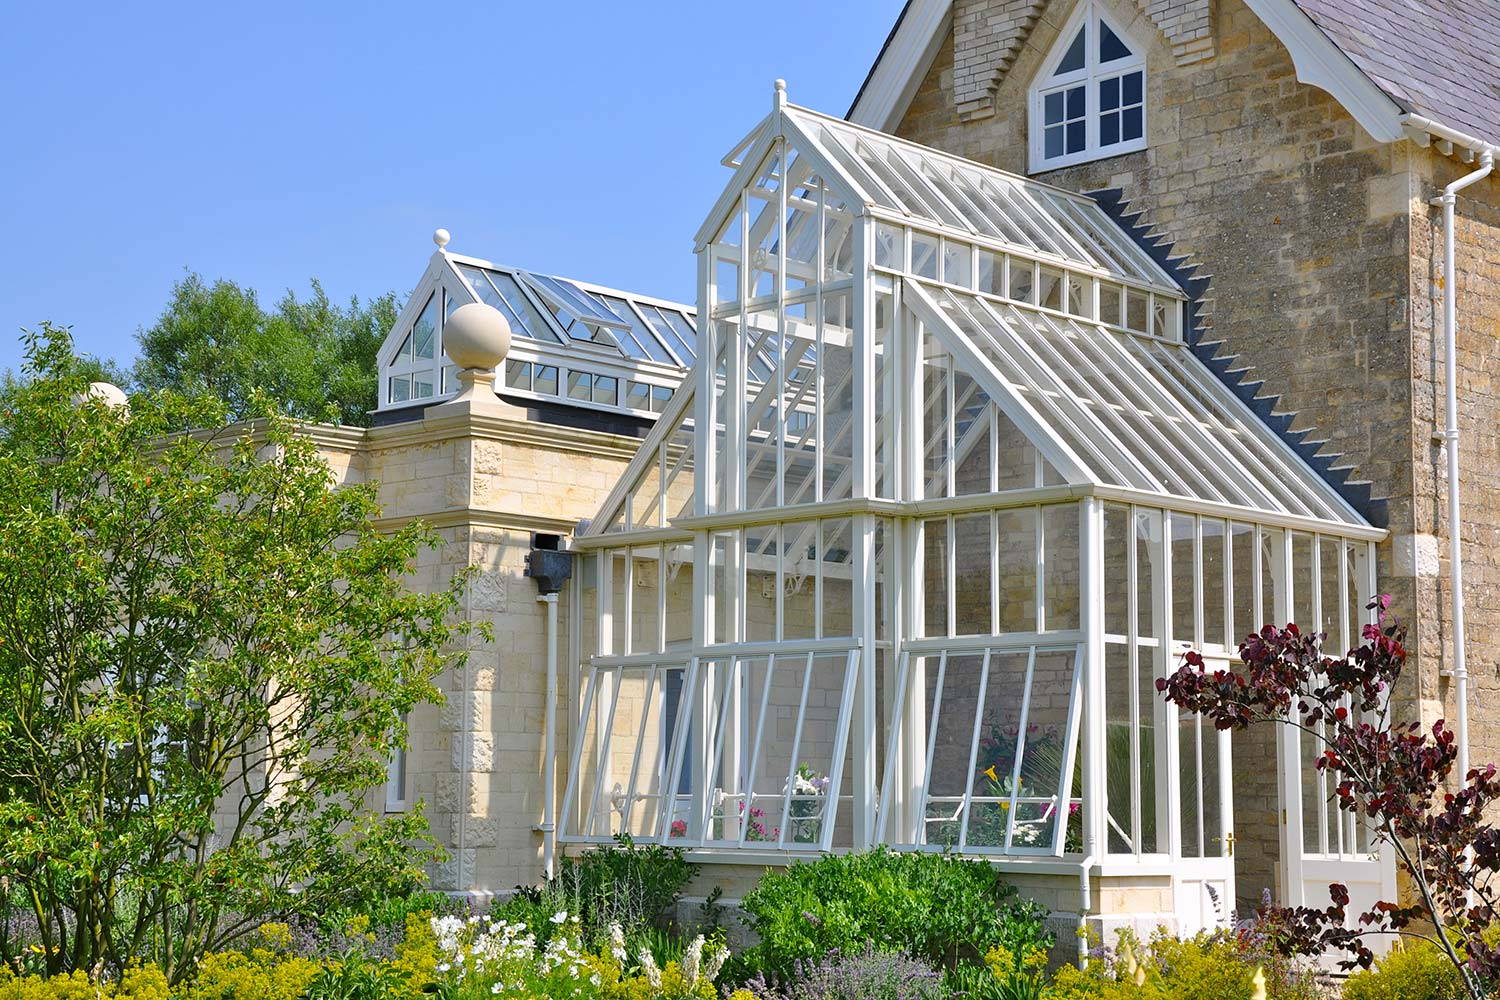 A full-span greenhouse at 45 degrees with a blank end wall and engine shed roof detail (Alitex)